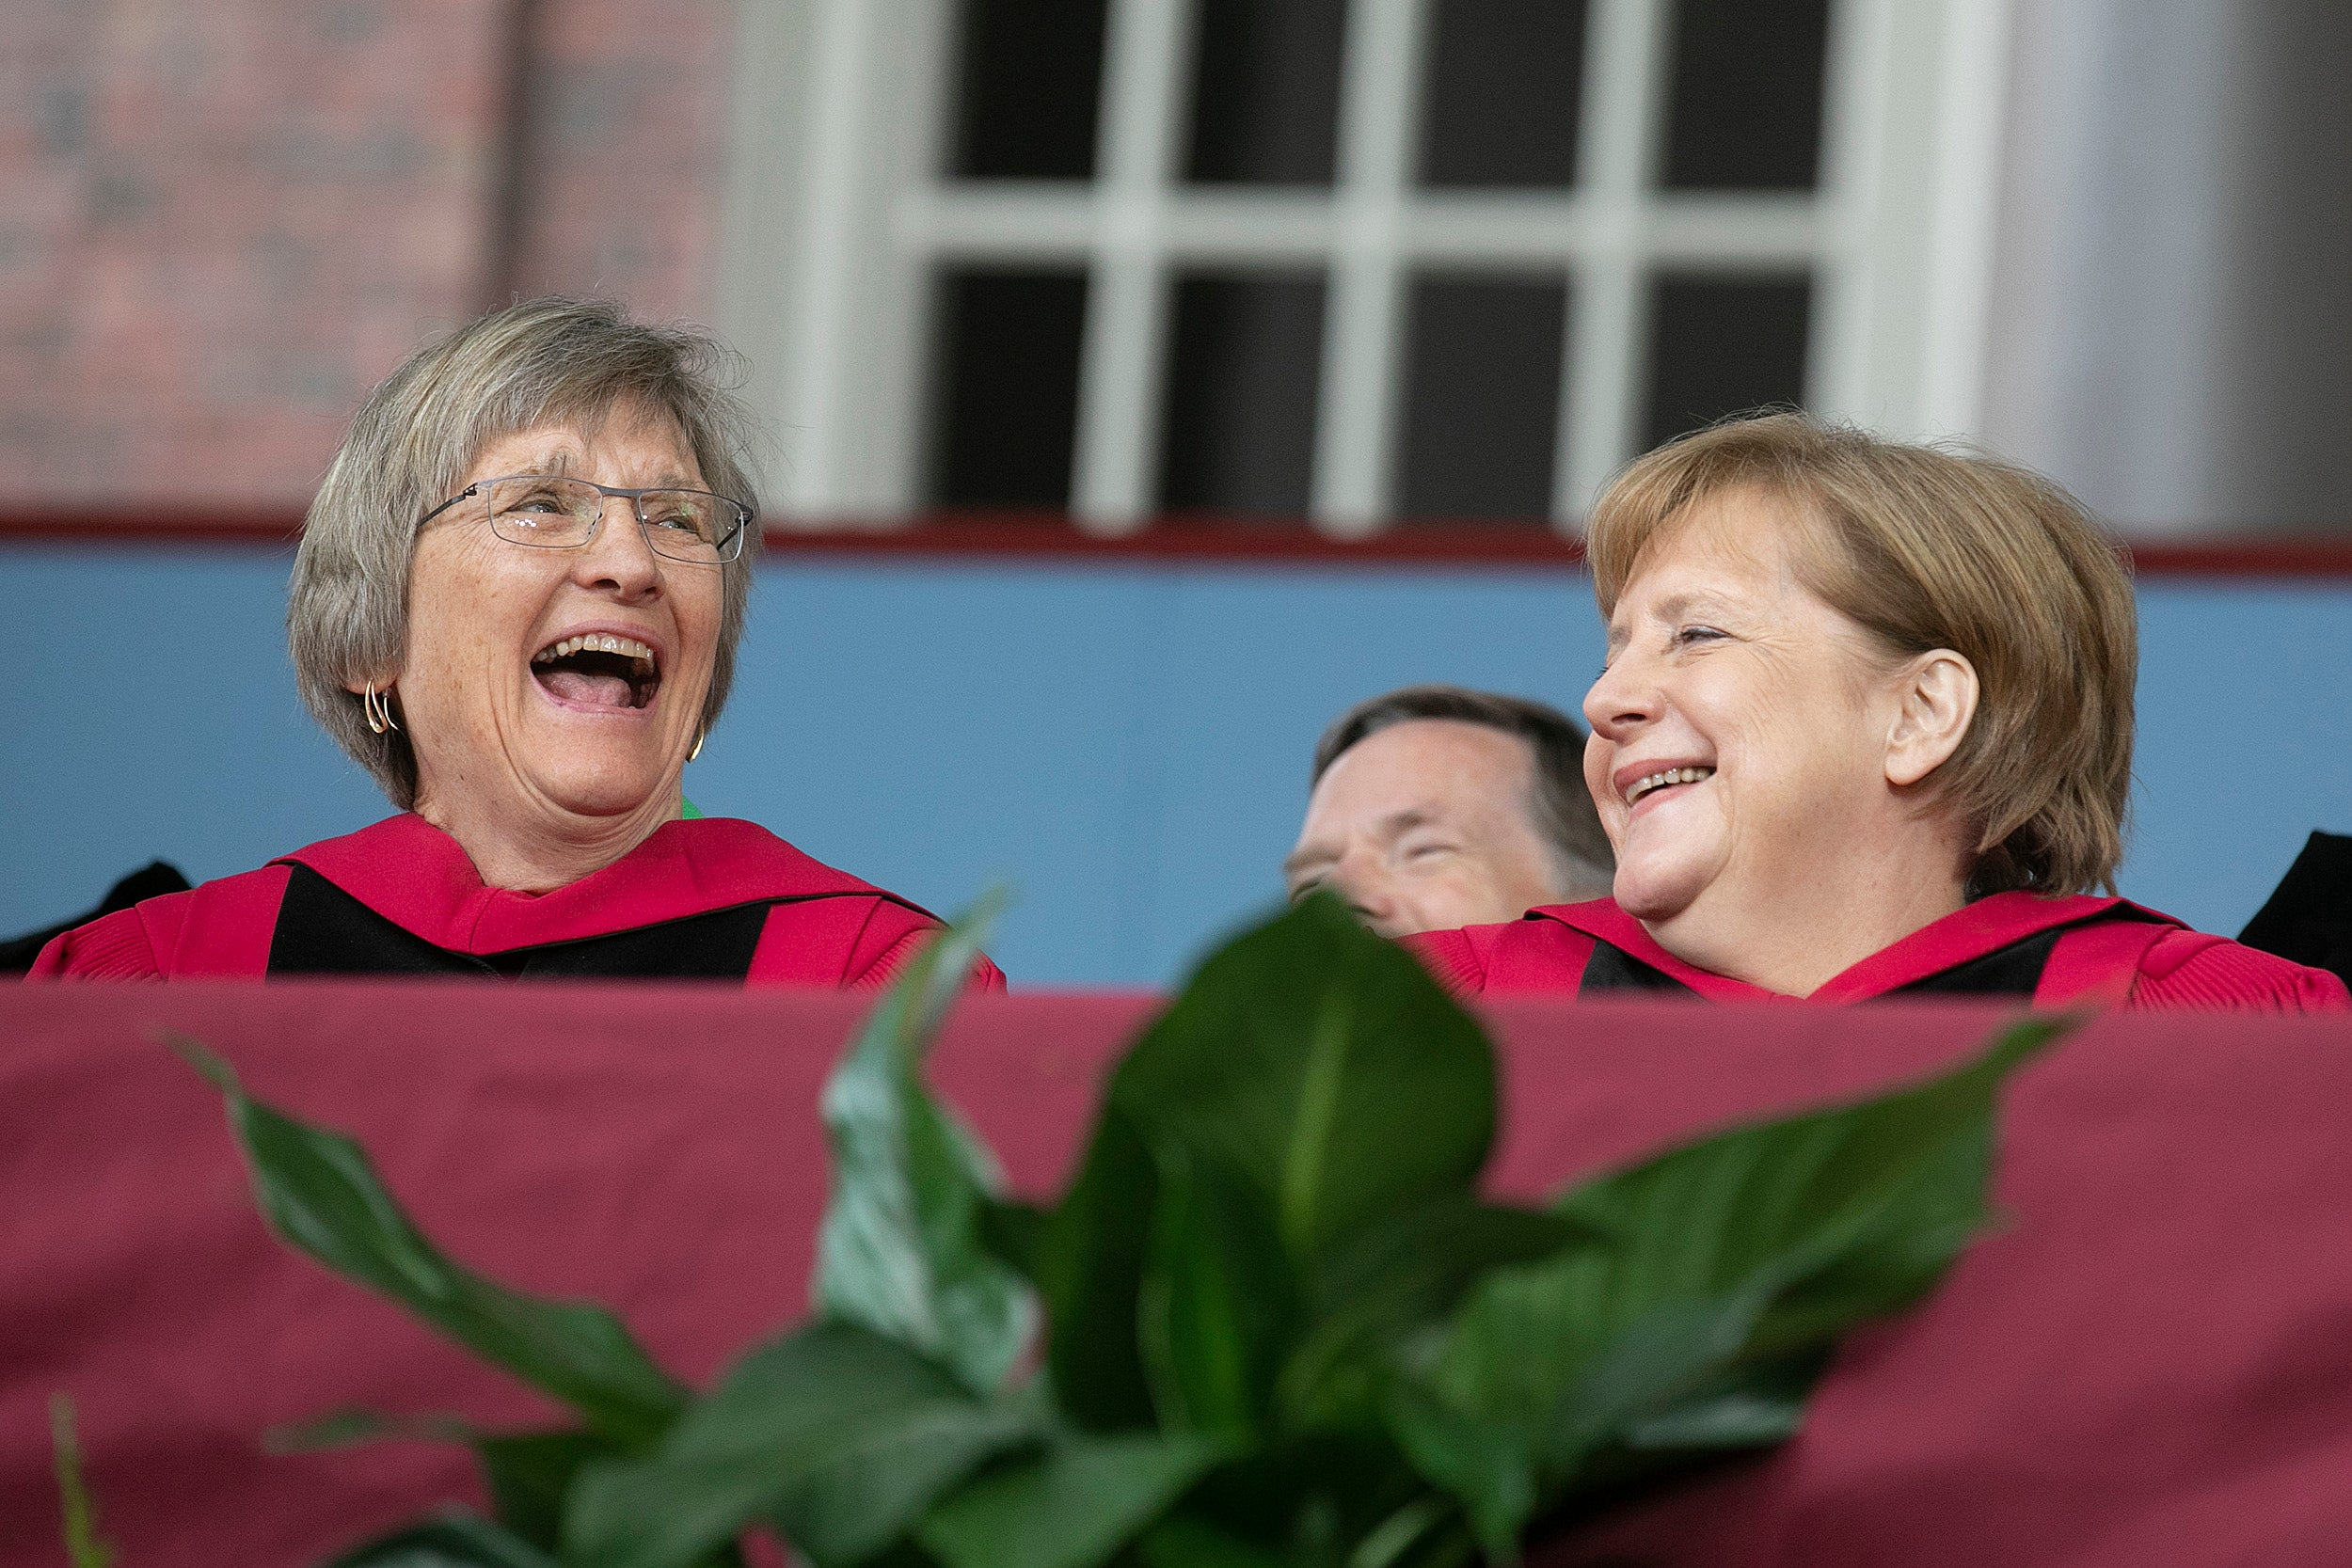 Drew Faust laughs with Angela Merkel